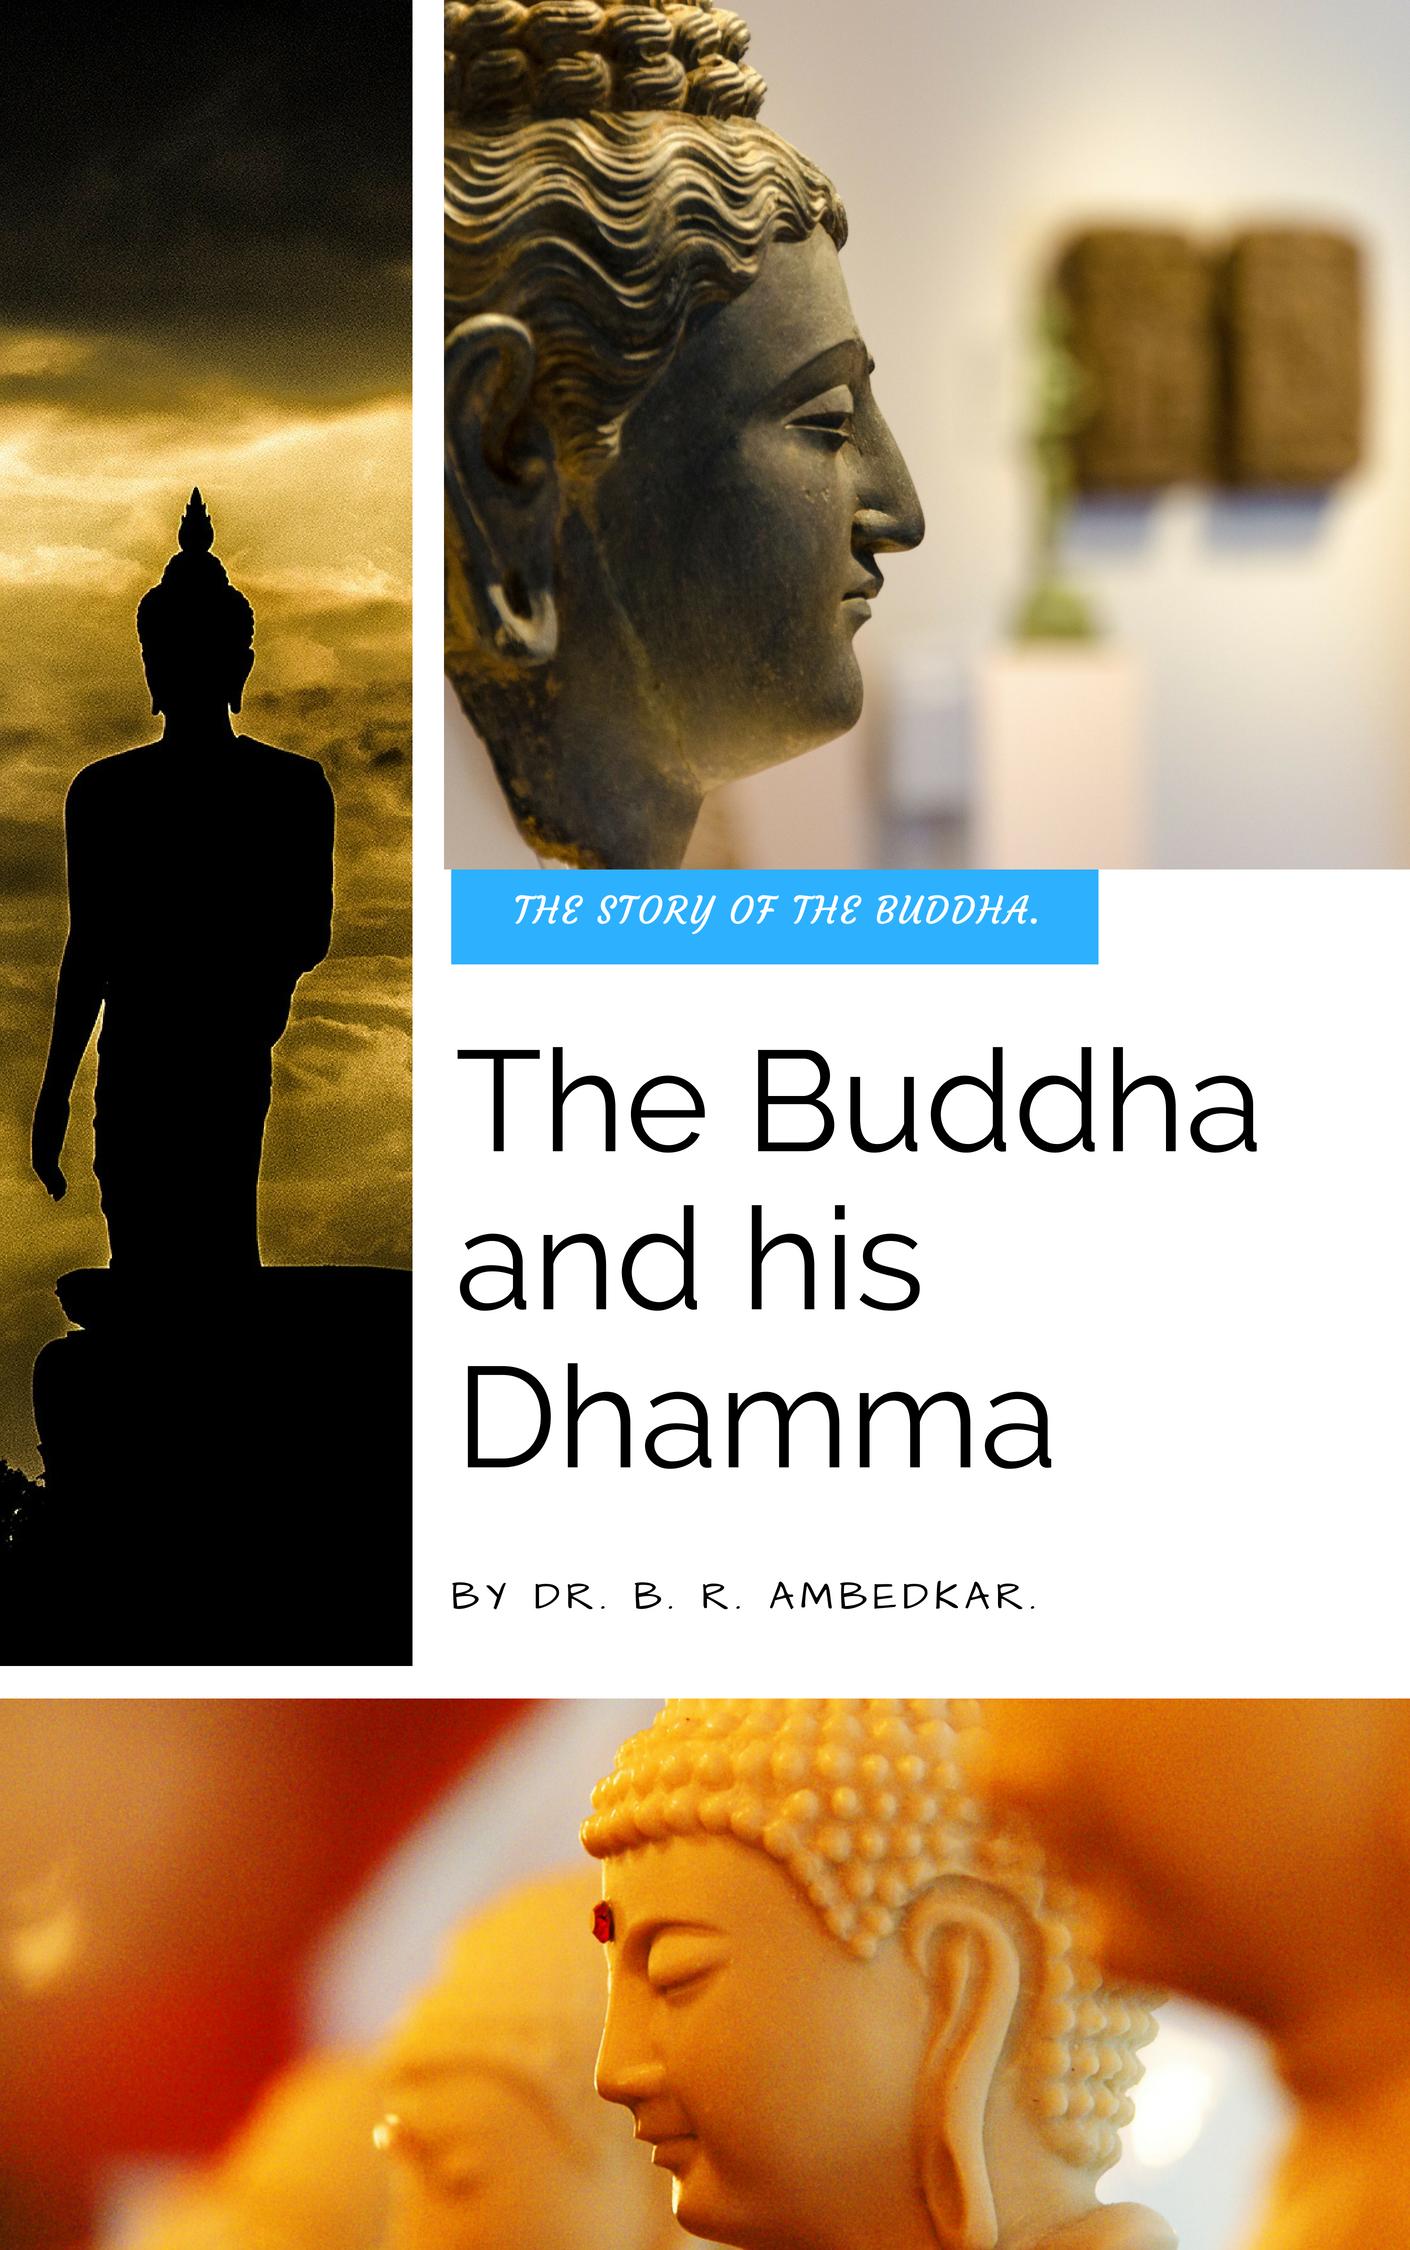 Download dhamma in the epub his and buddha